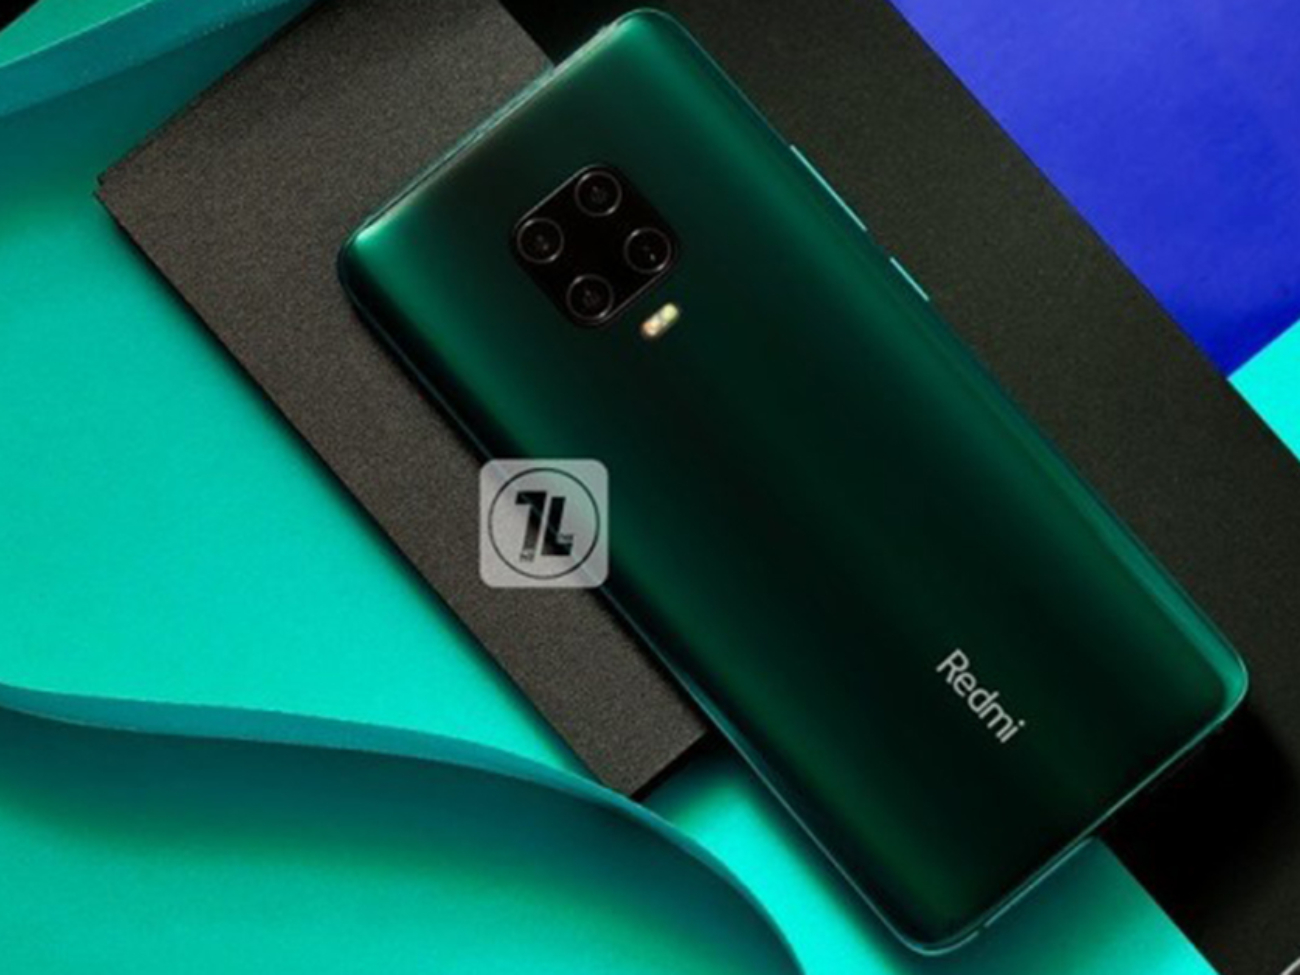 Redmi-Note-9-Concept-based-on-leaks-2